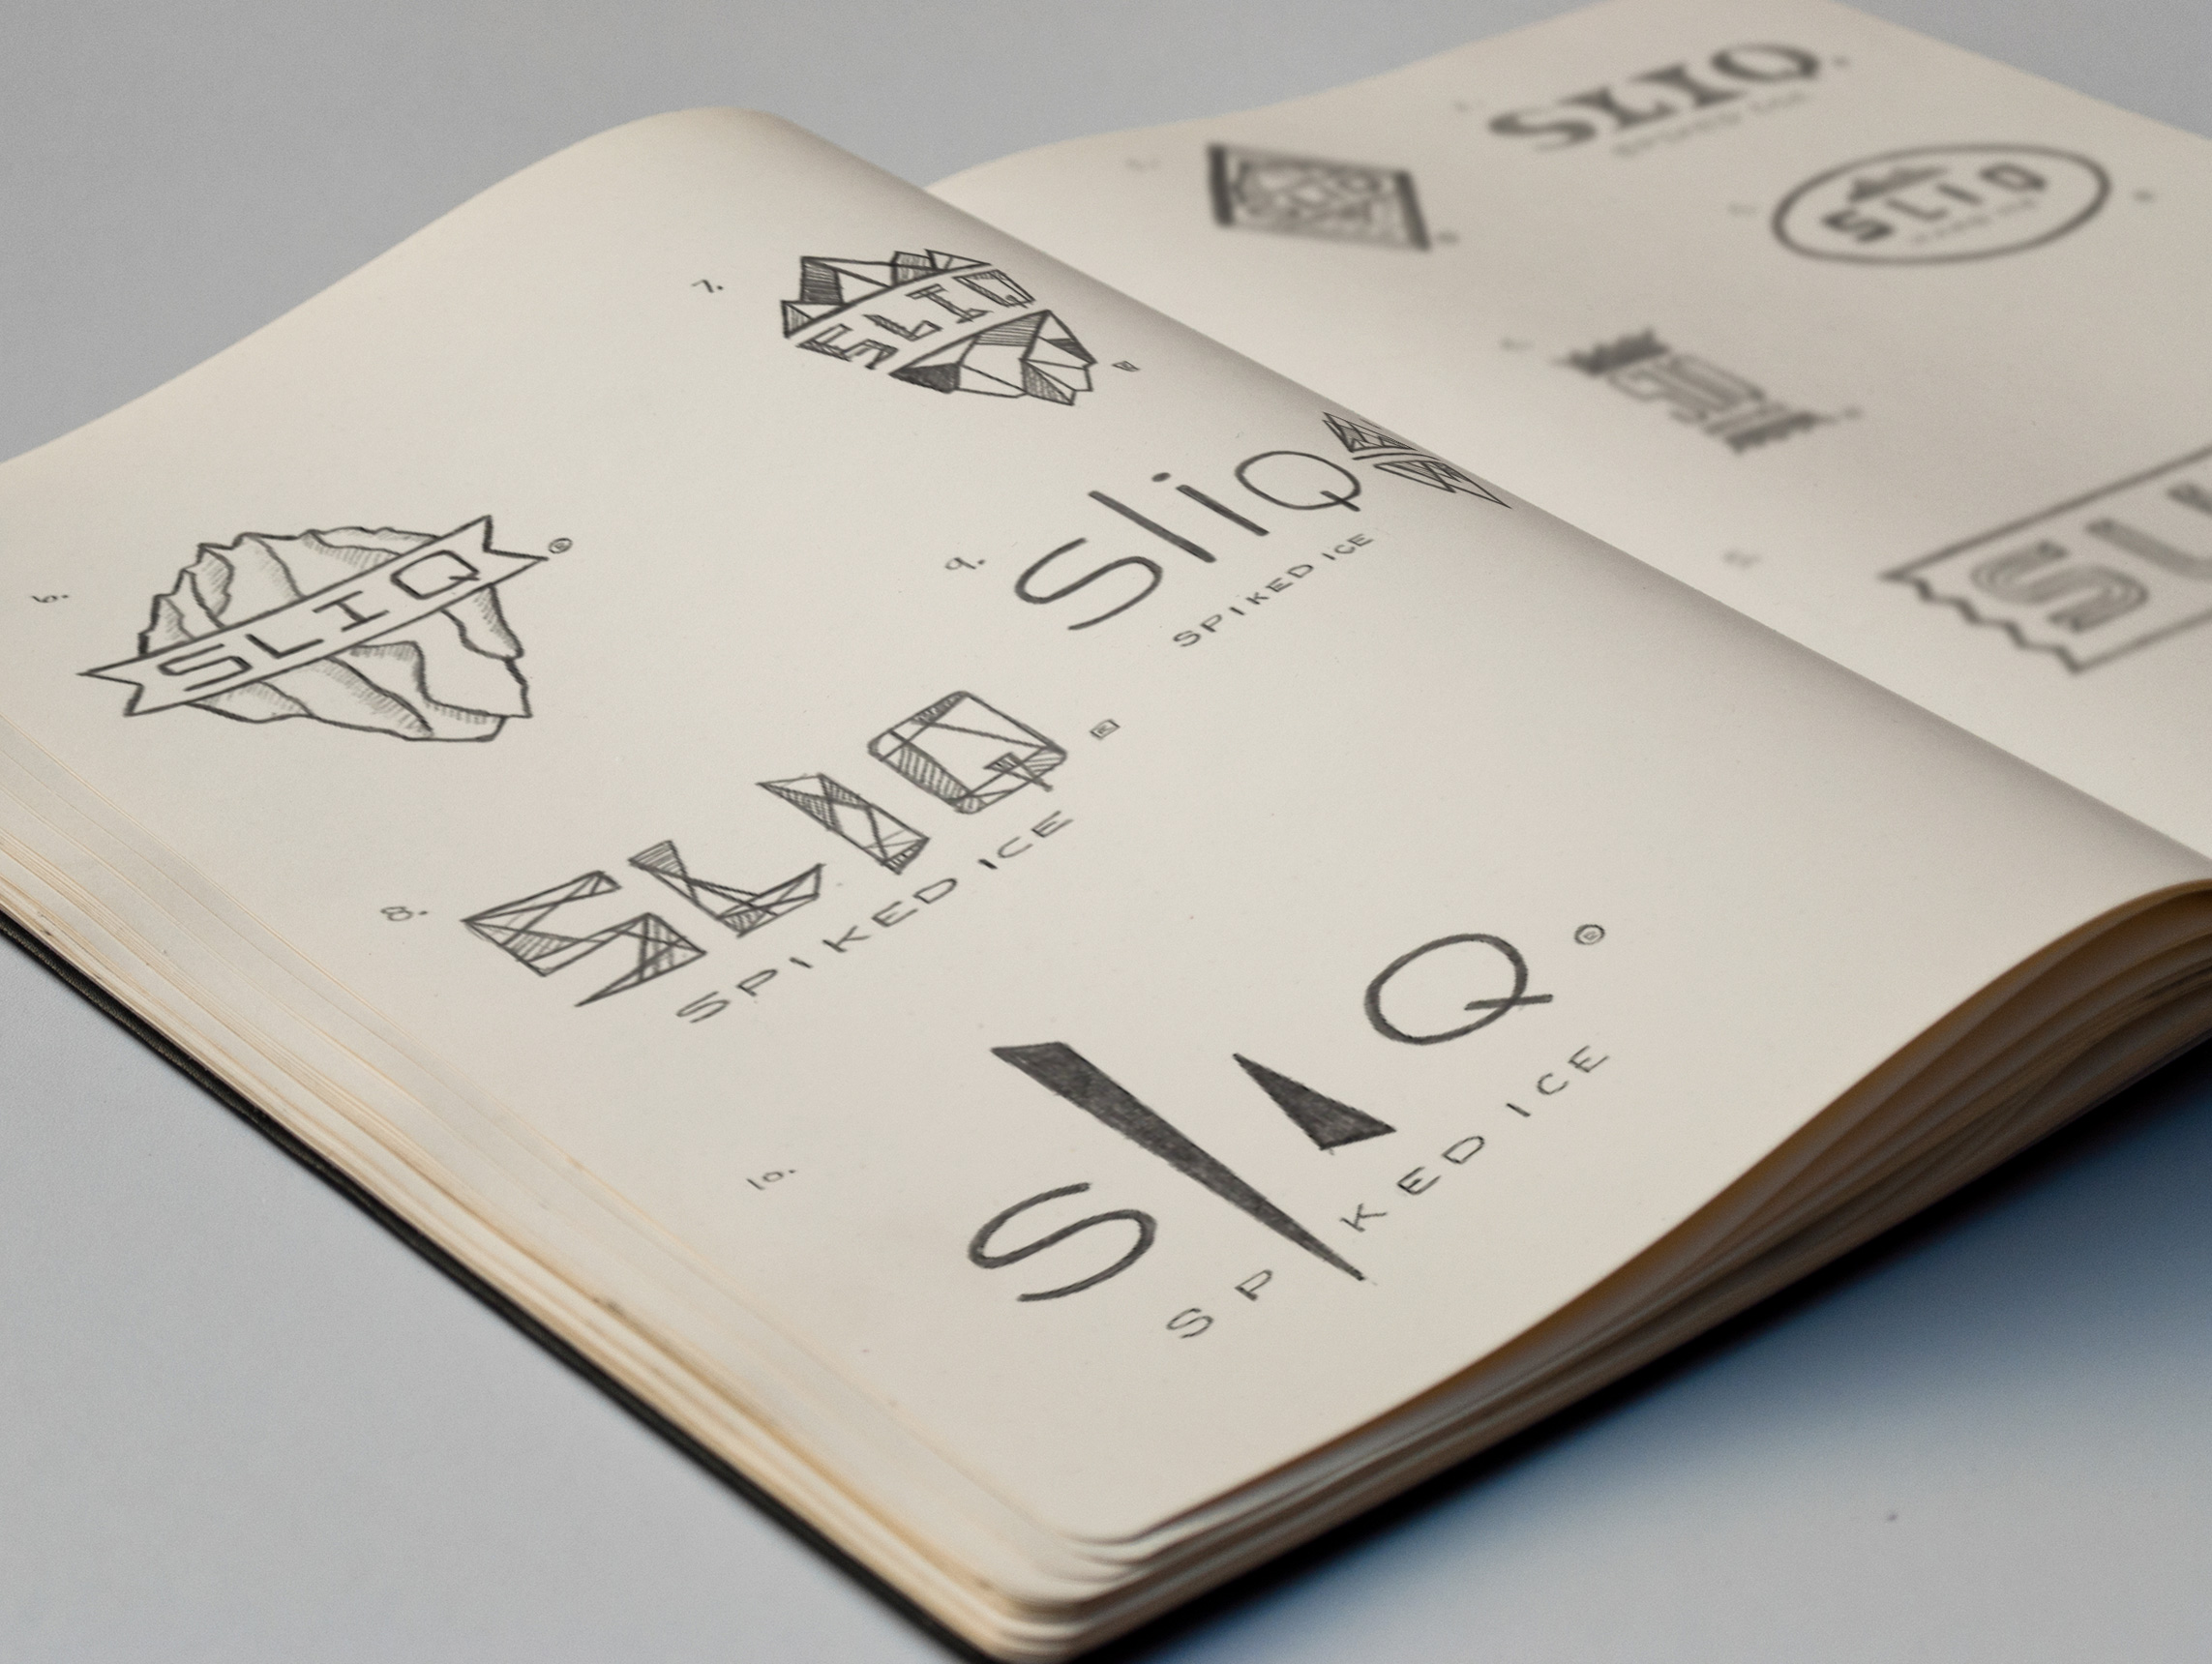 Sliq Spirited Ice brand design and logo design by Agency Squid